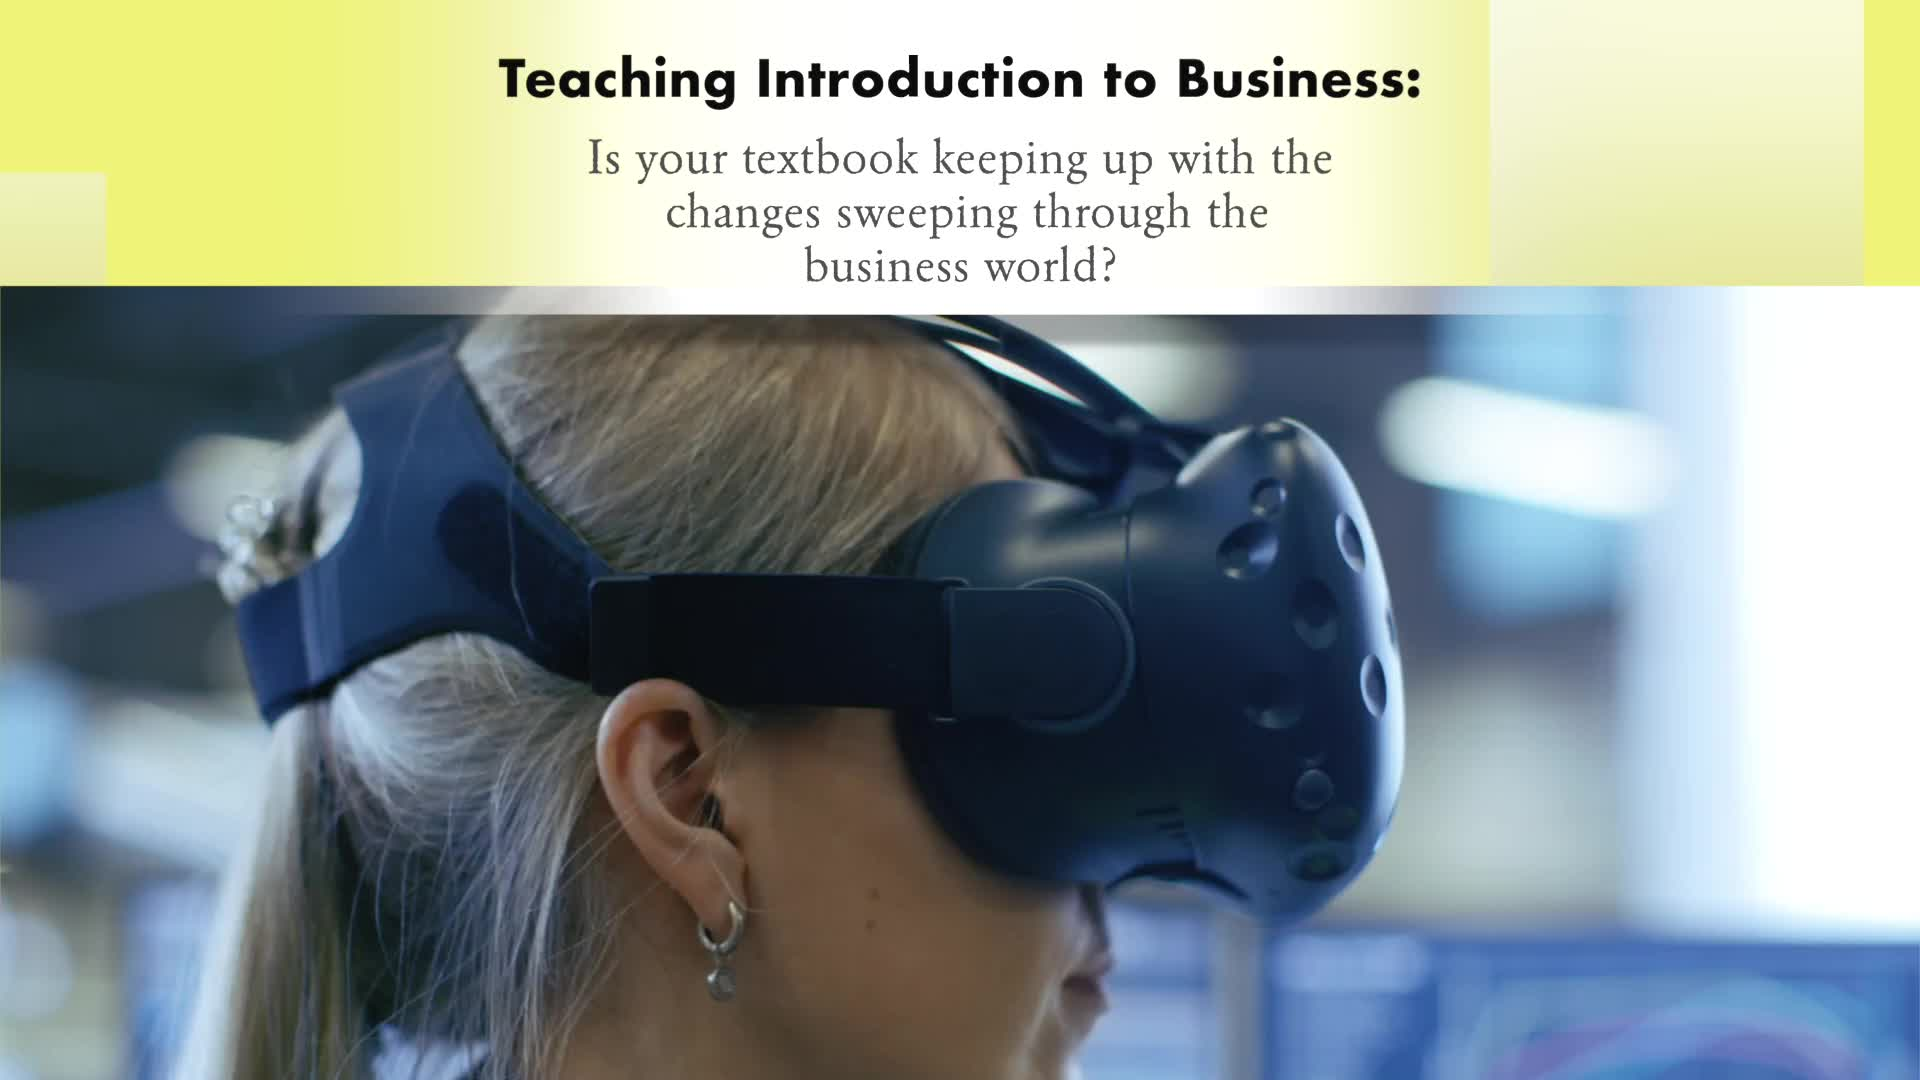 You Should Be Teaching about the Digital Transformation in Introduction to Business!